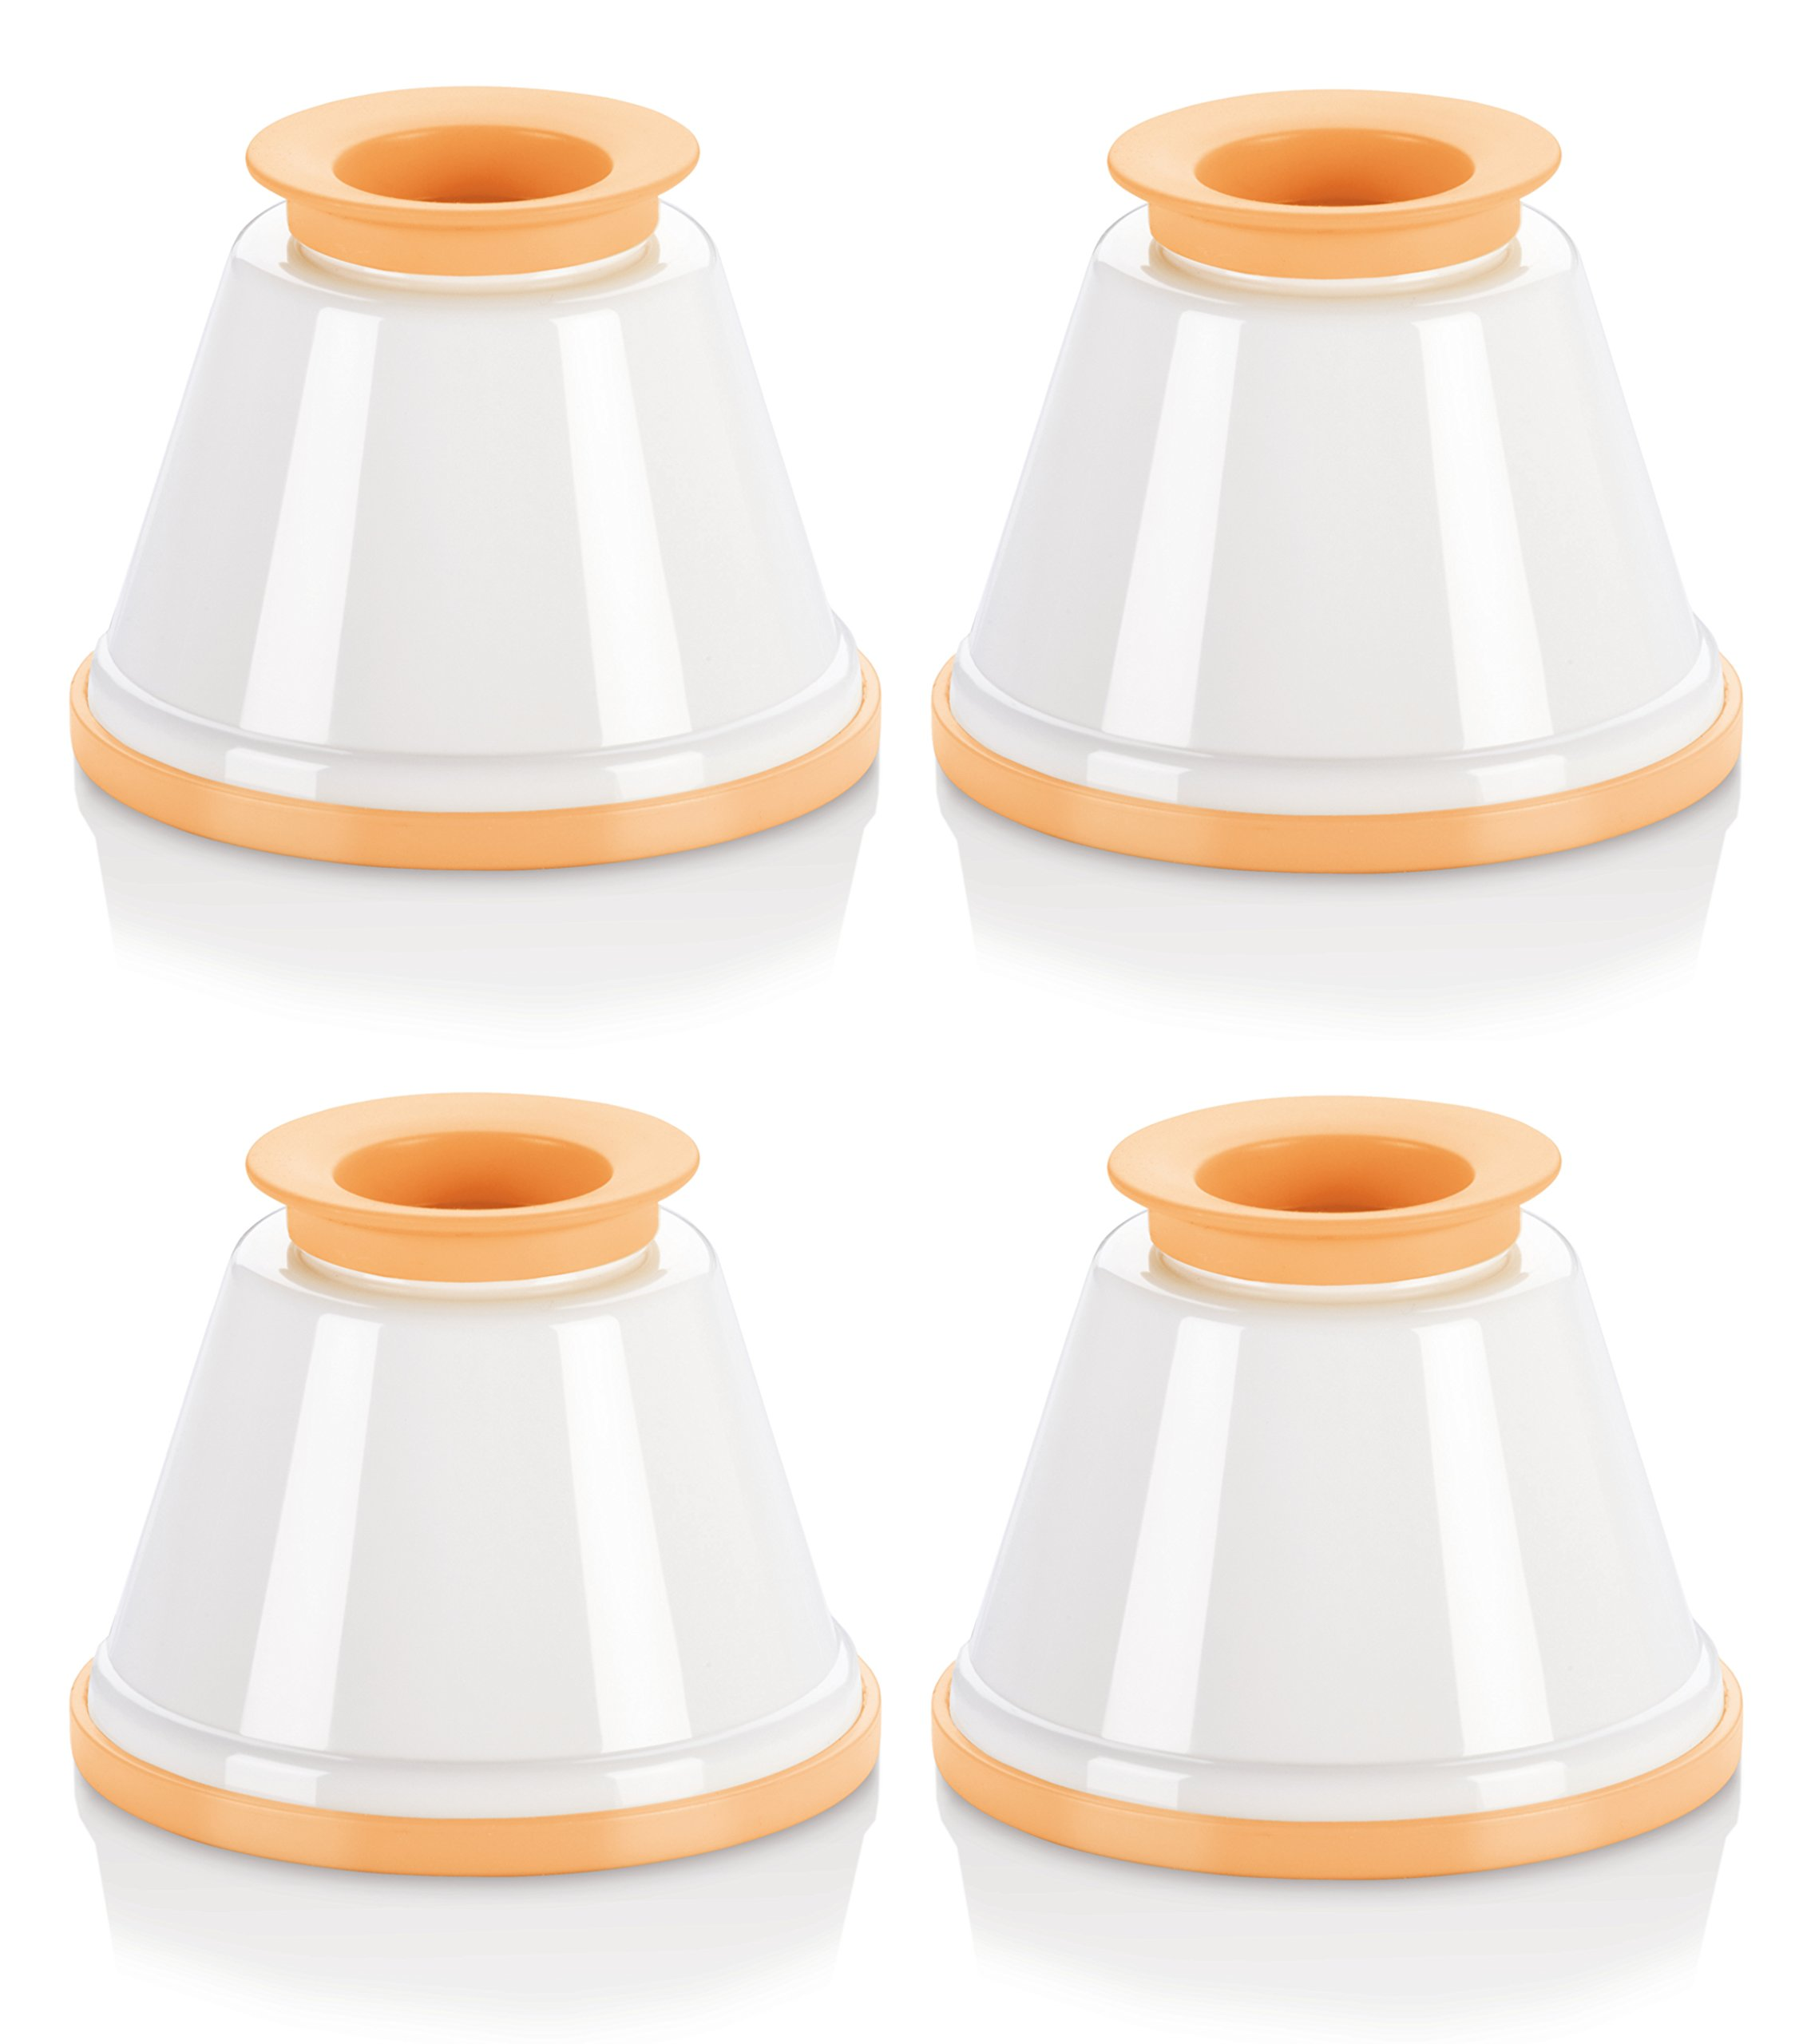 Tescoma 630591.00 Panna Cotta Mould Set | Set of 4 Cups with Lid